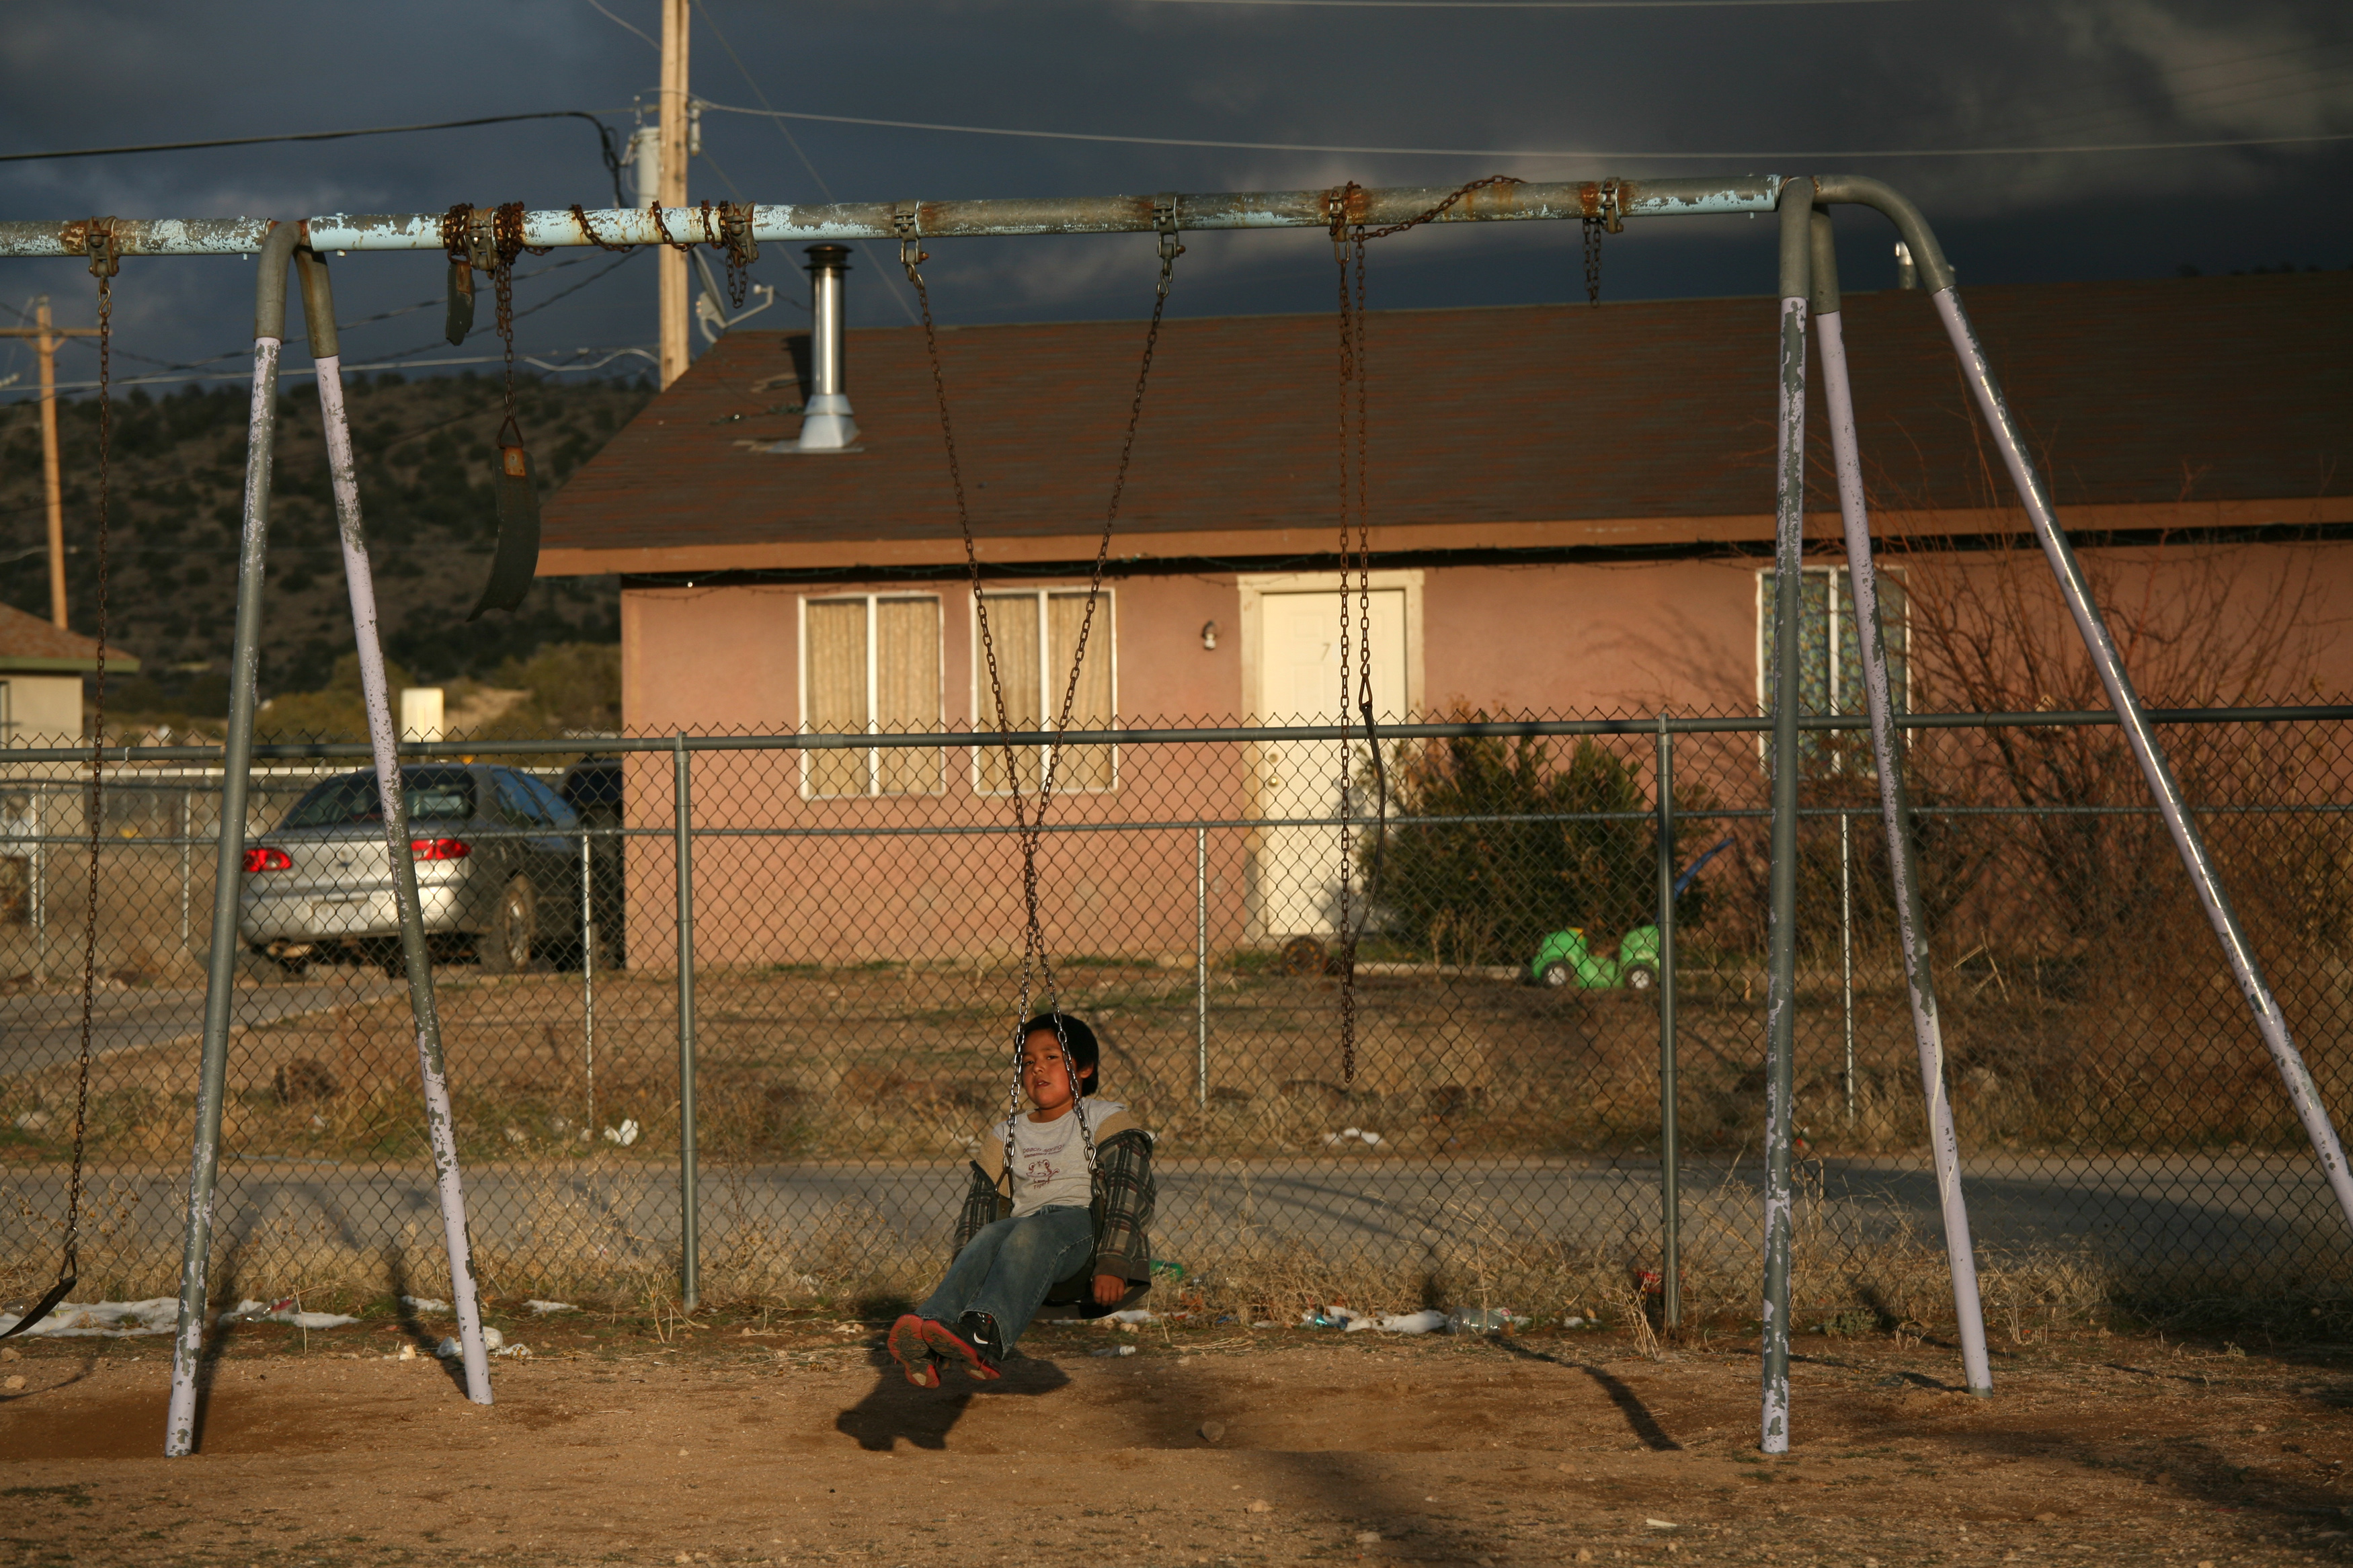 A young boy plays on a swing set in a park on the Hualapai Indian Reservation in Peach Springs, Ariz., Feb. 28, 2012.